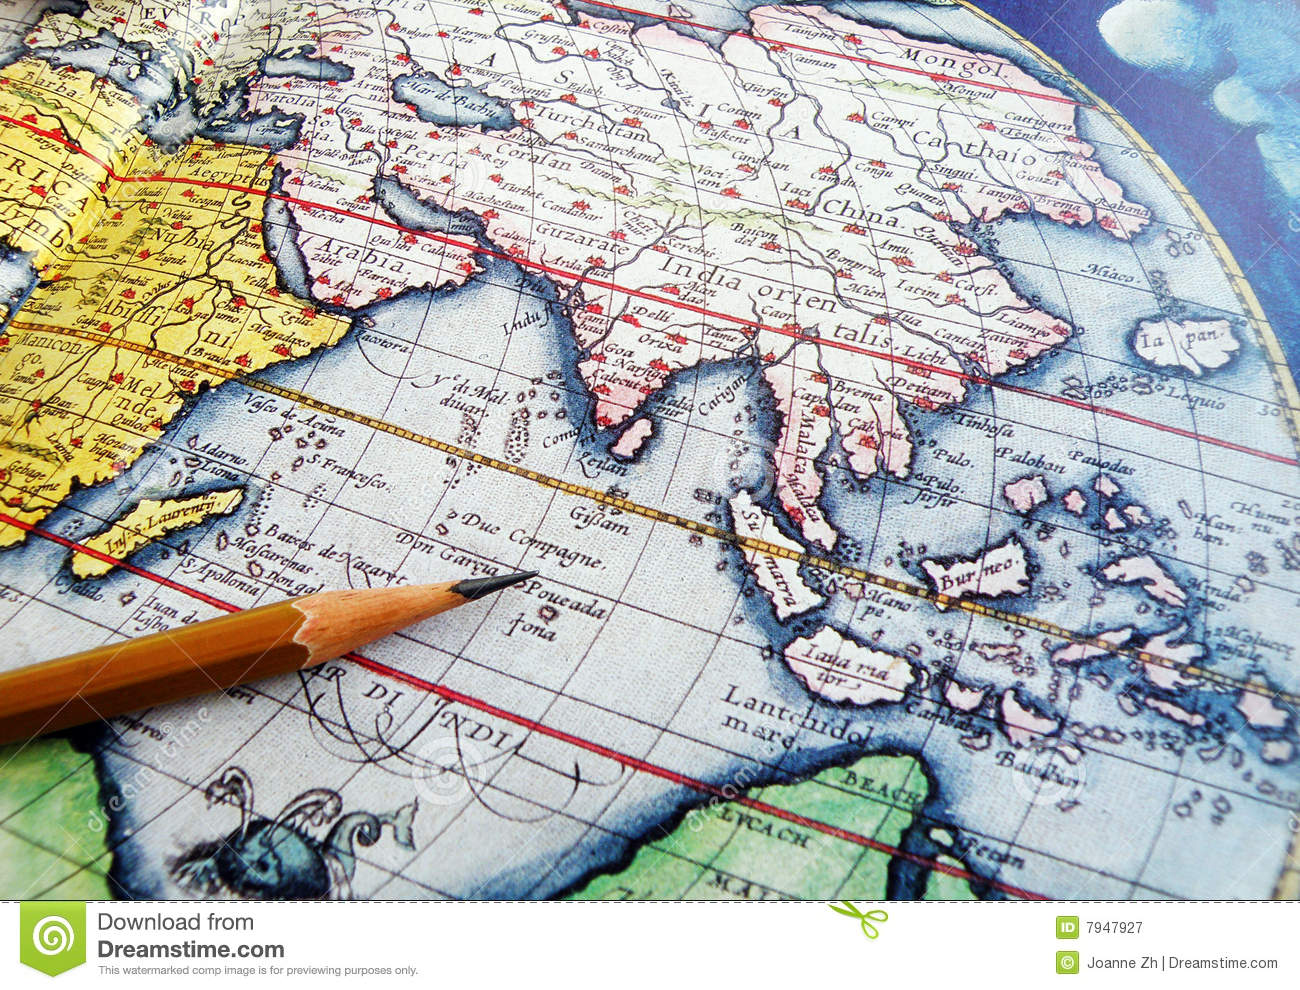 http://www.dreamstime.com/royalty-free-stock-photography-antique-world-globe-pencil-image7947927